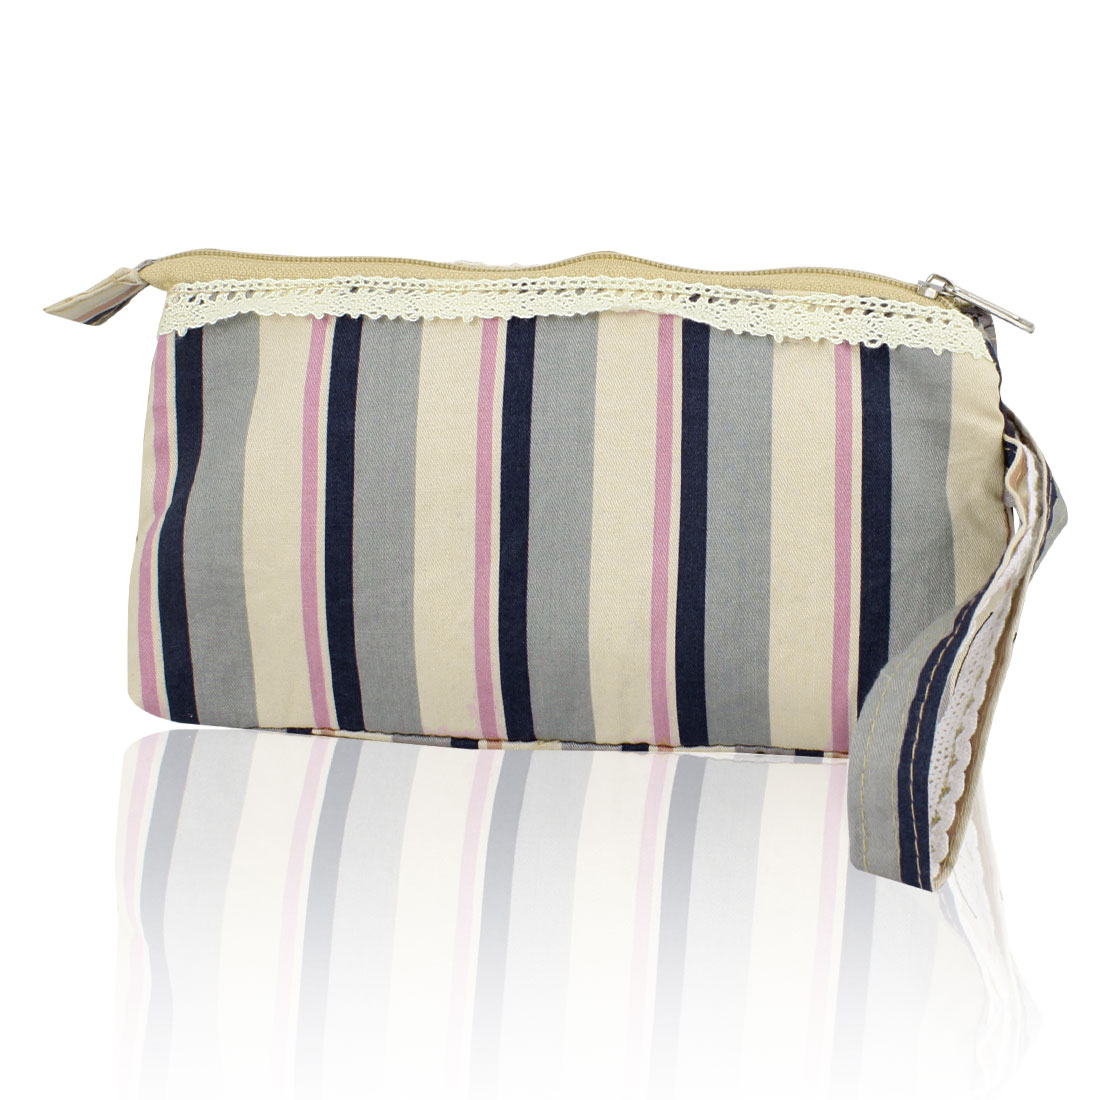 Women 19cm Long Tricolor Stripe Pattern Zip Up Purse Wallet w Wrist String